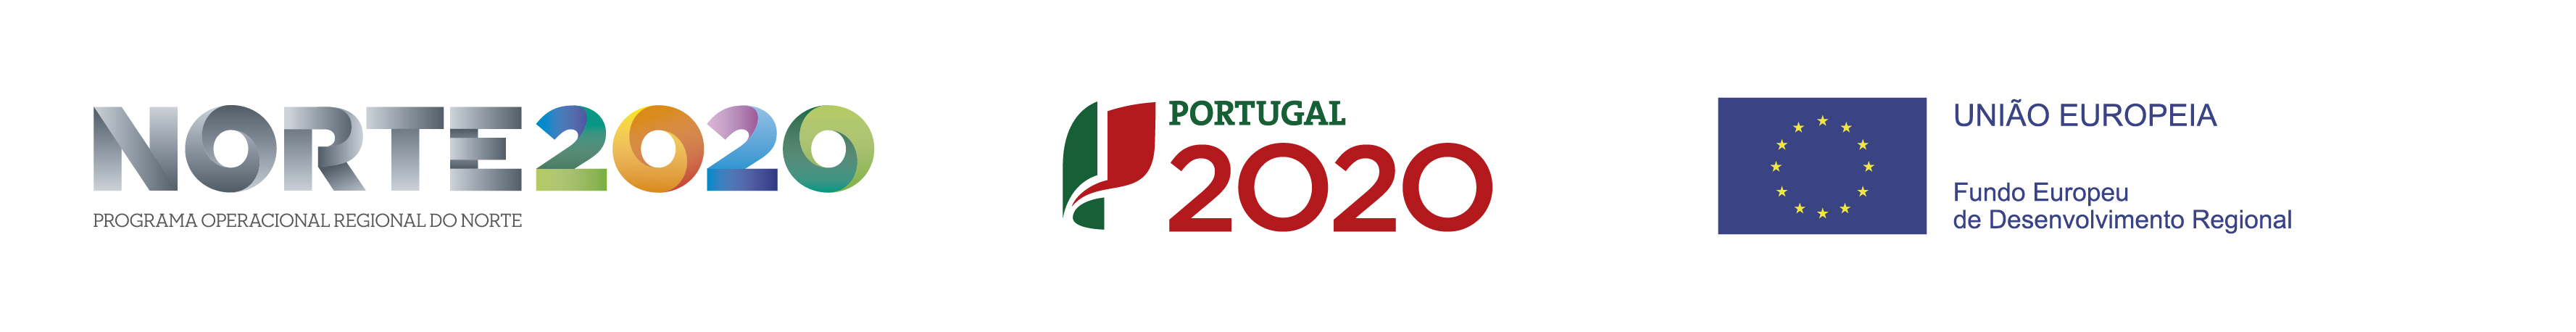 Barra Norte2020 Portugal 2020